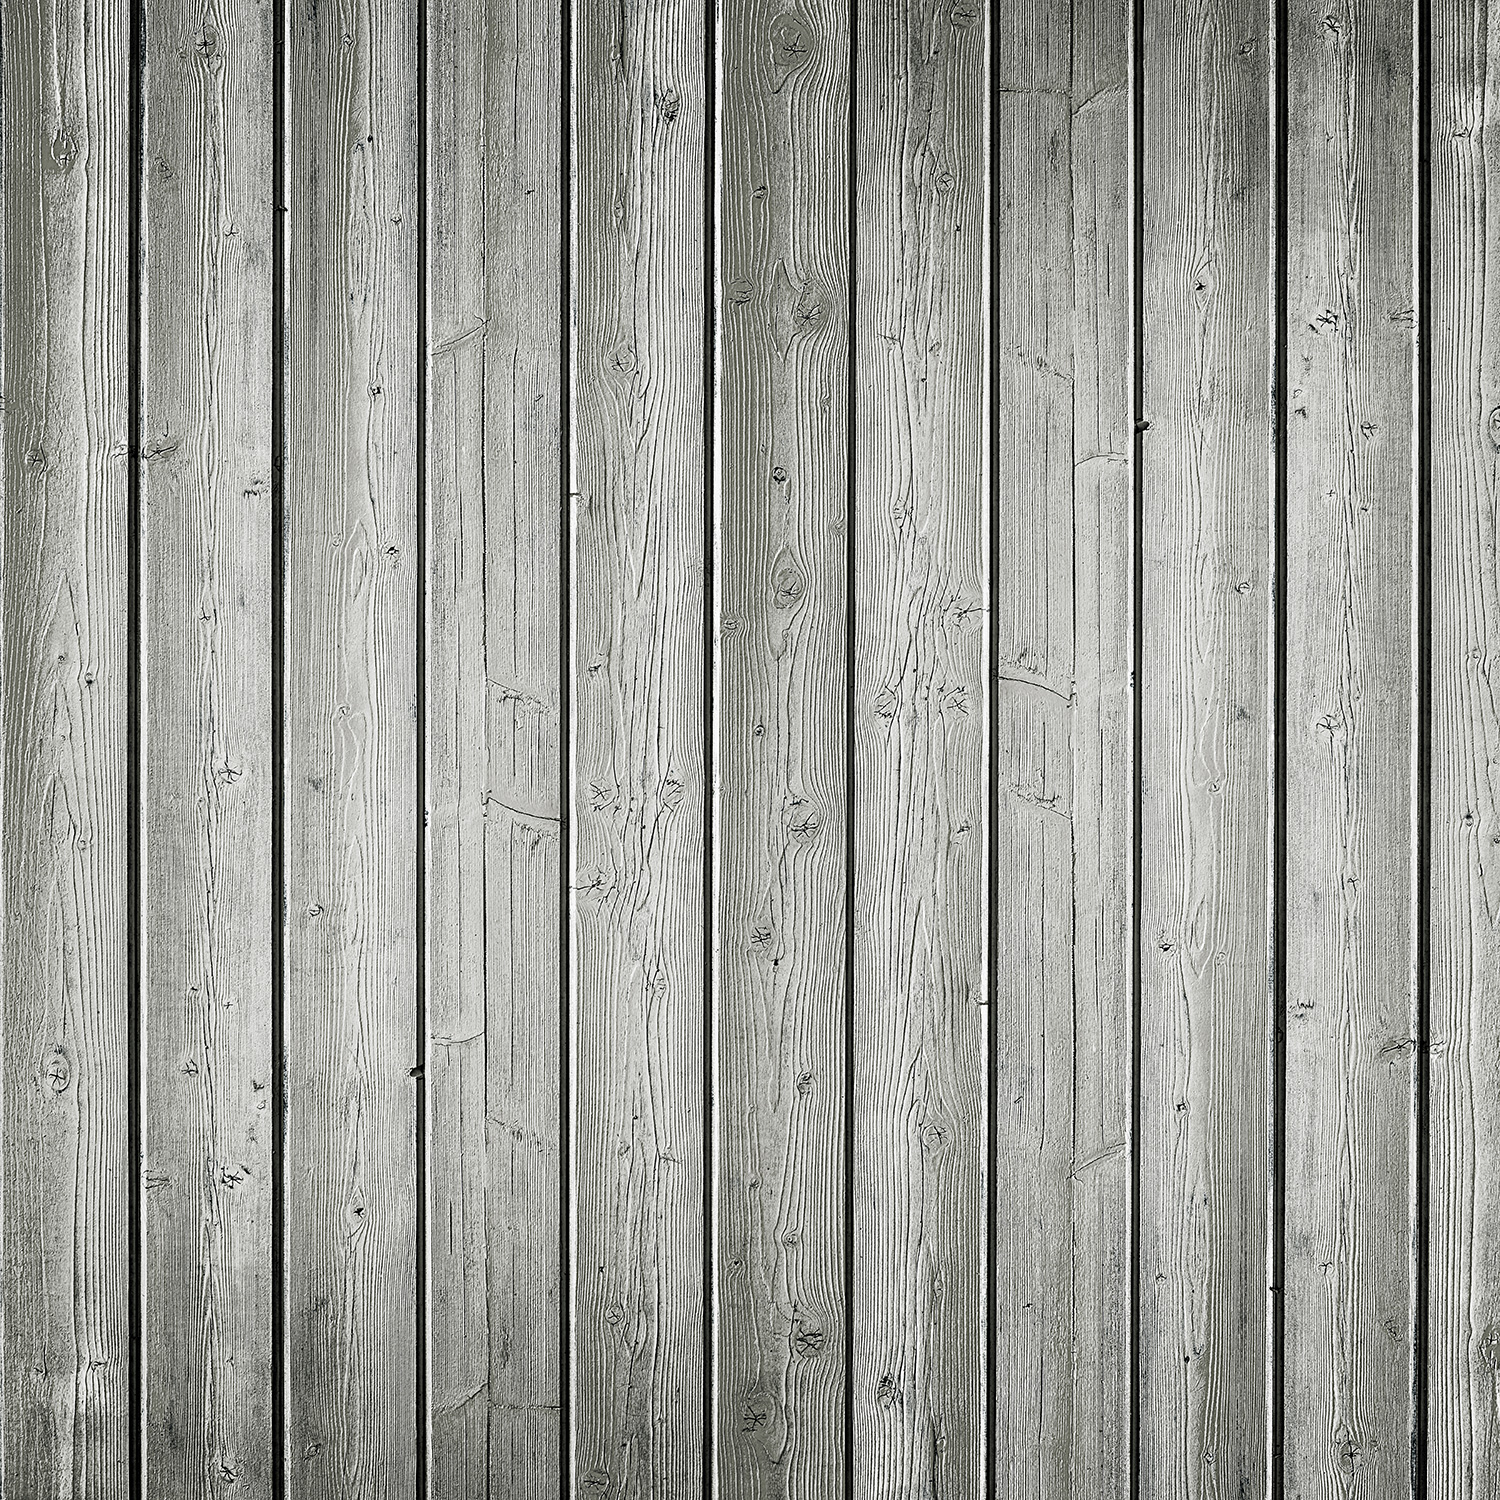 Narrow Planks Matte Vinyl Backdrop (3.5' x 3.5') - Light Gray